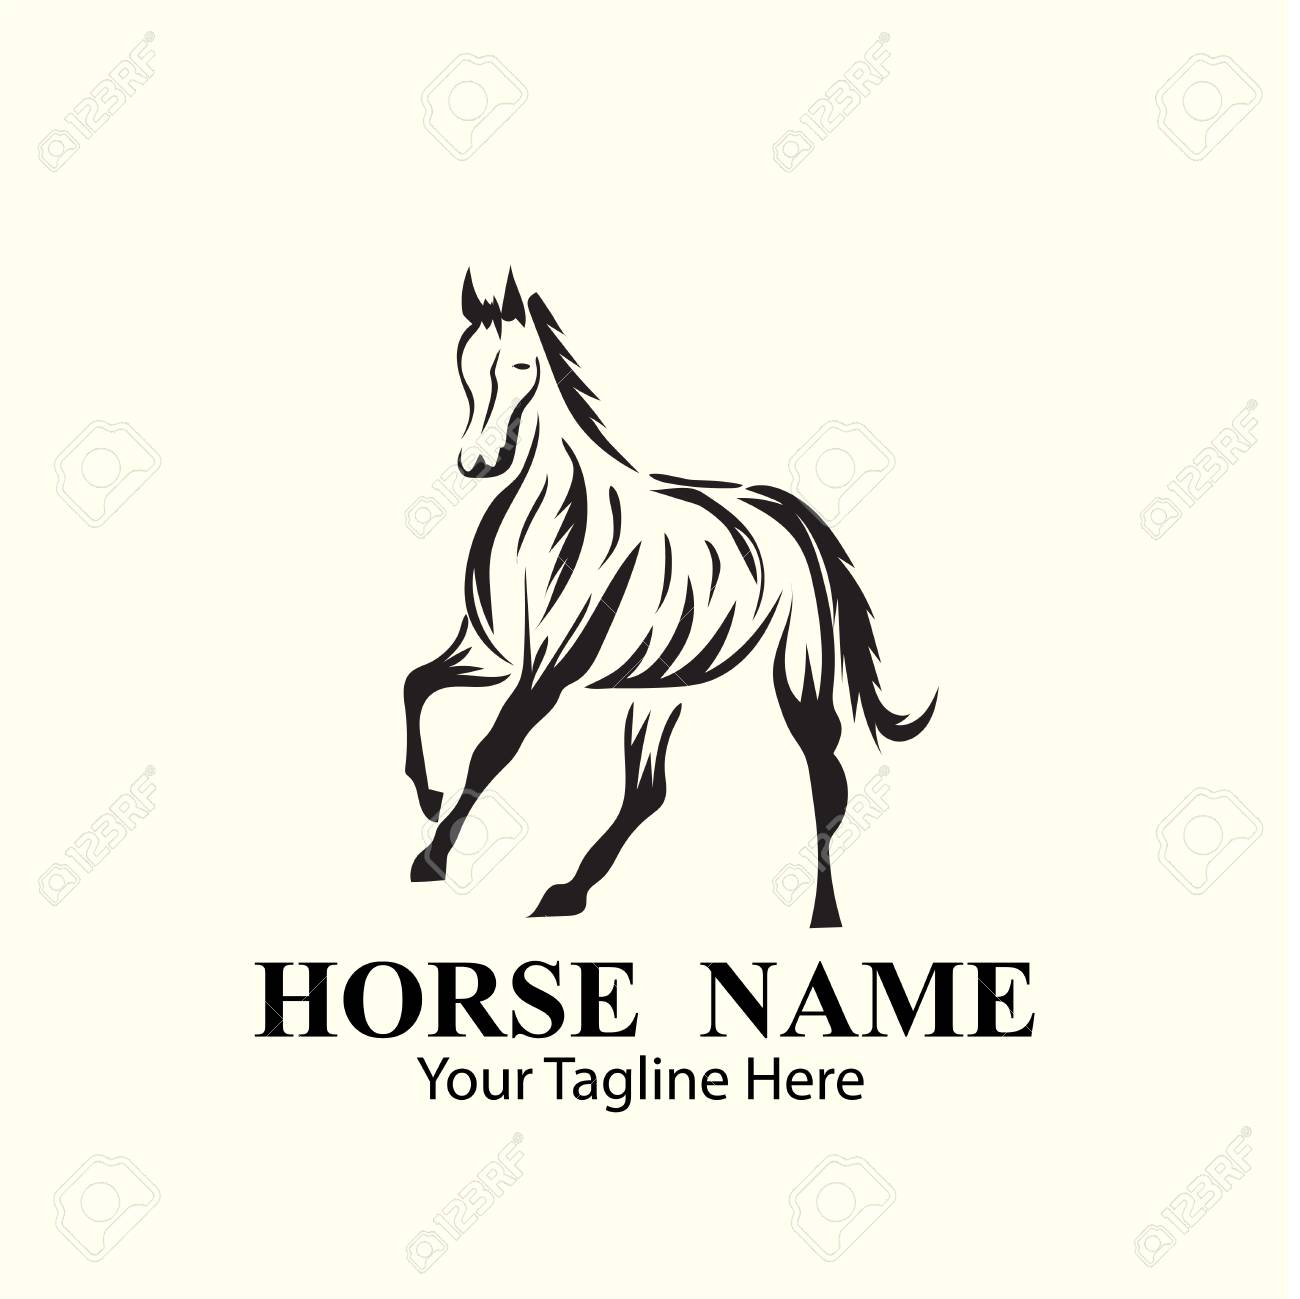 Horse Logo Designs Concept Royalty Free Cliparts Vectors And Stock Illustration Image 117596672